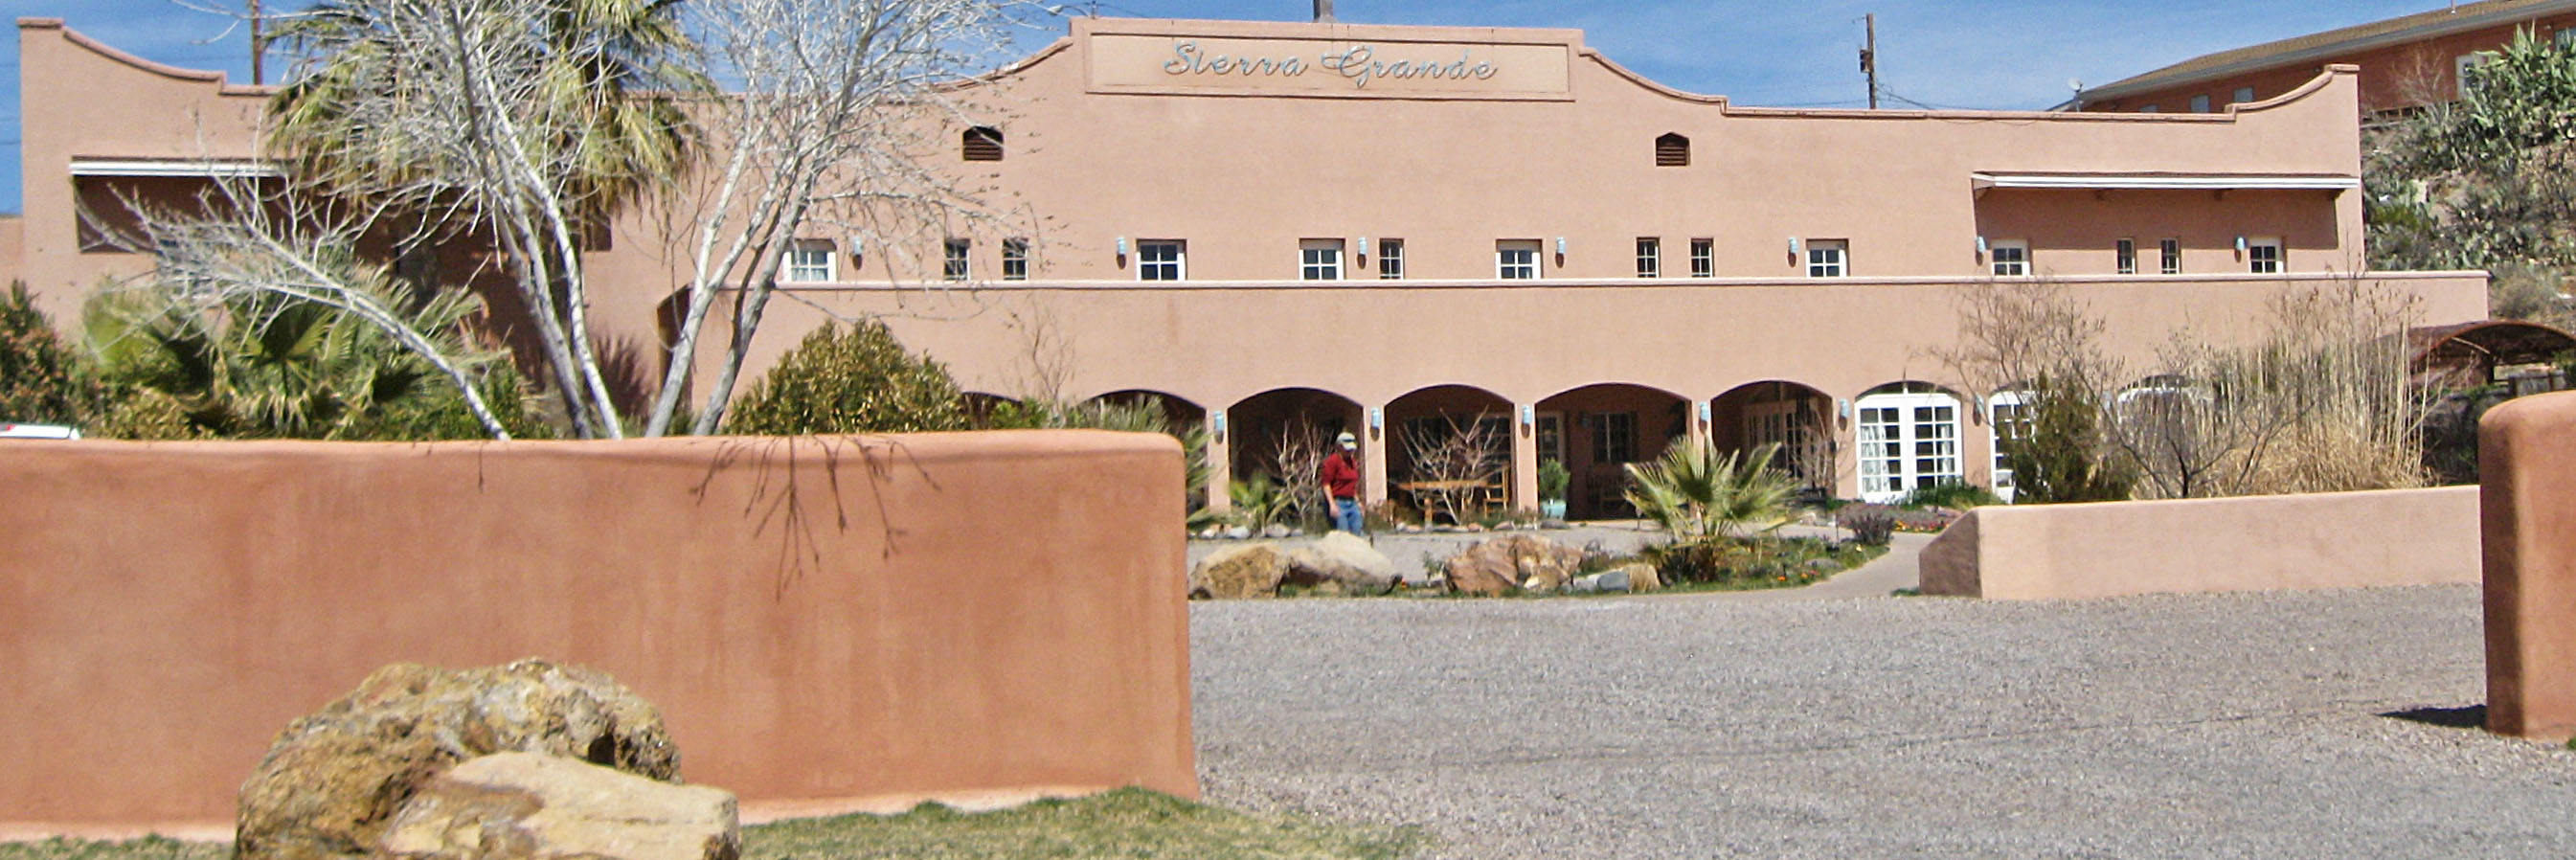 File Sierra Grande Lodge Truth Or Consequences New Mexico Jpg